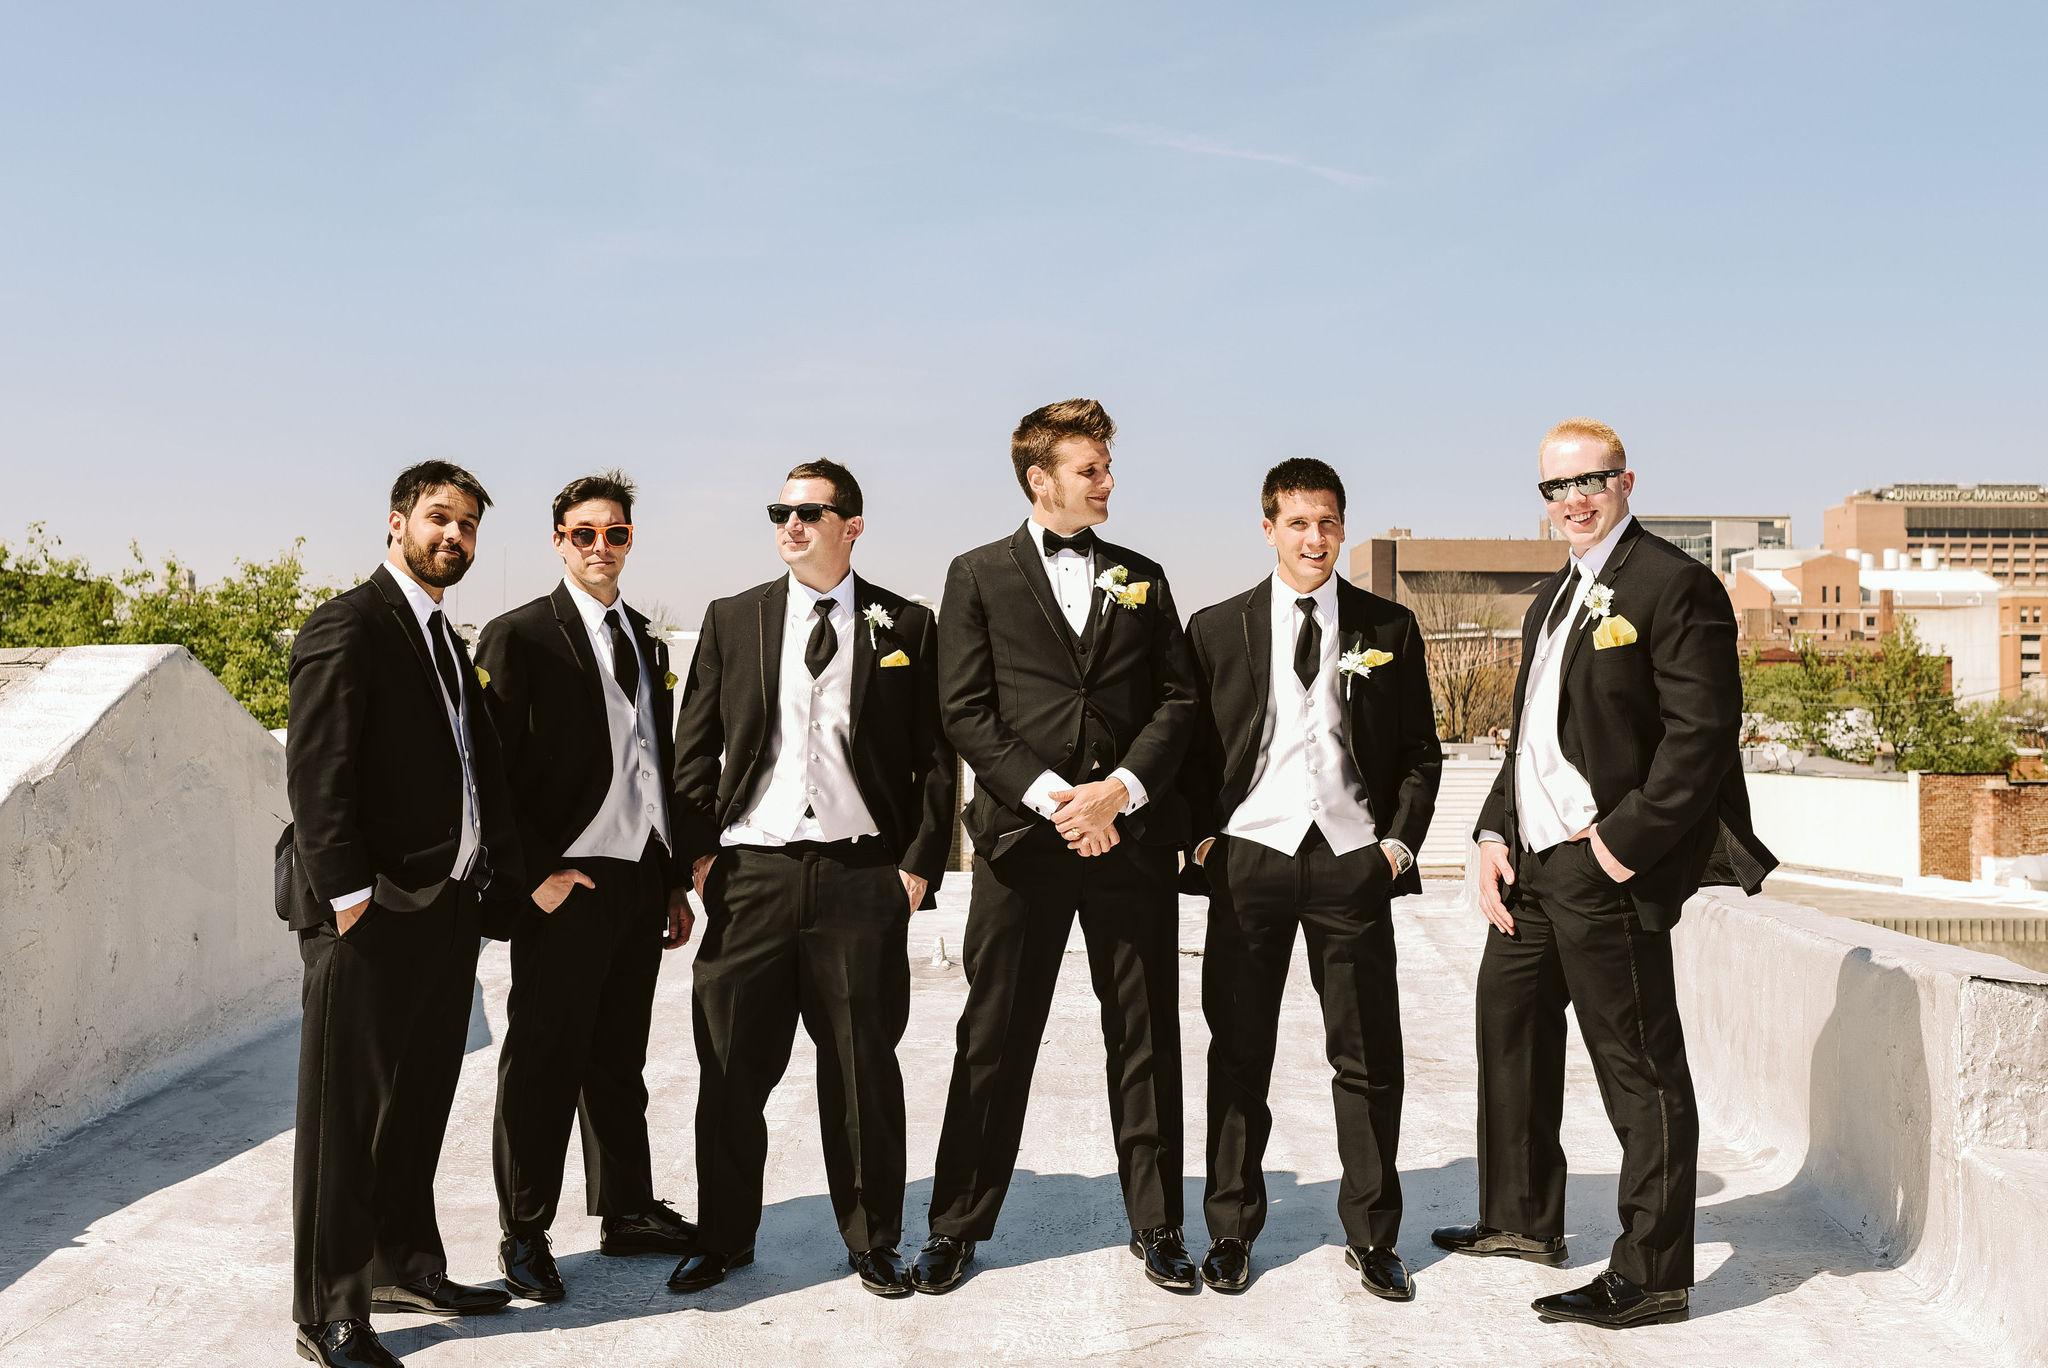 Baltimore, Church Wedding, Maryland Wedding Photographer, Vintage, Classic, 50s Style, Groom with Groomsmen Portrait, Black Suits